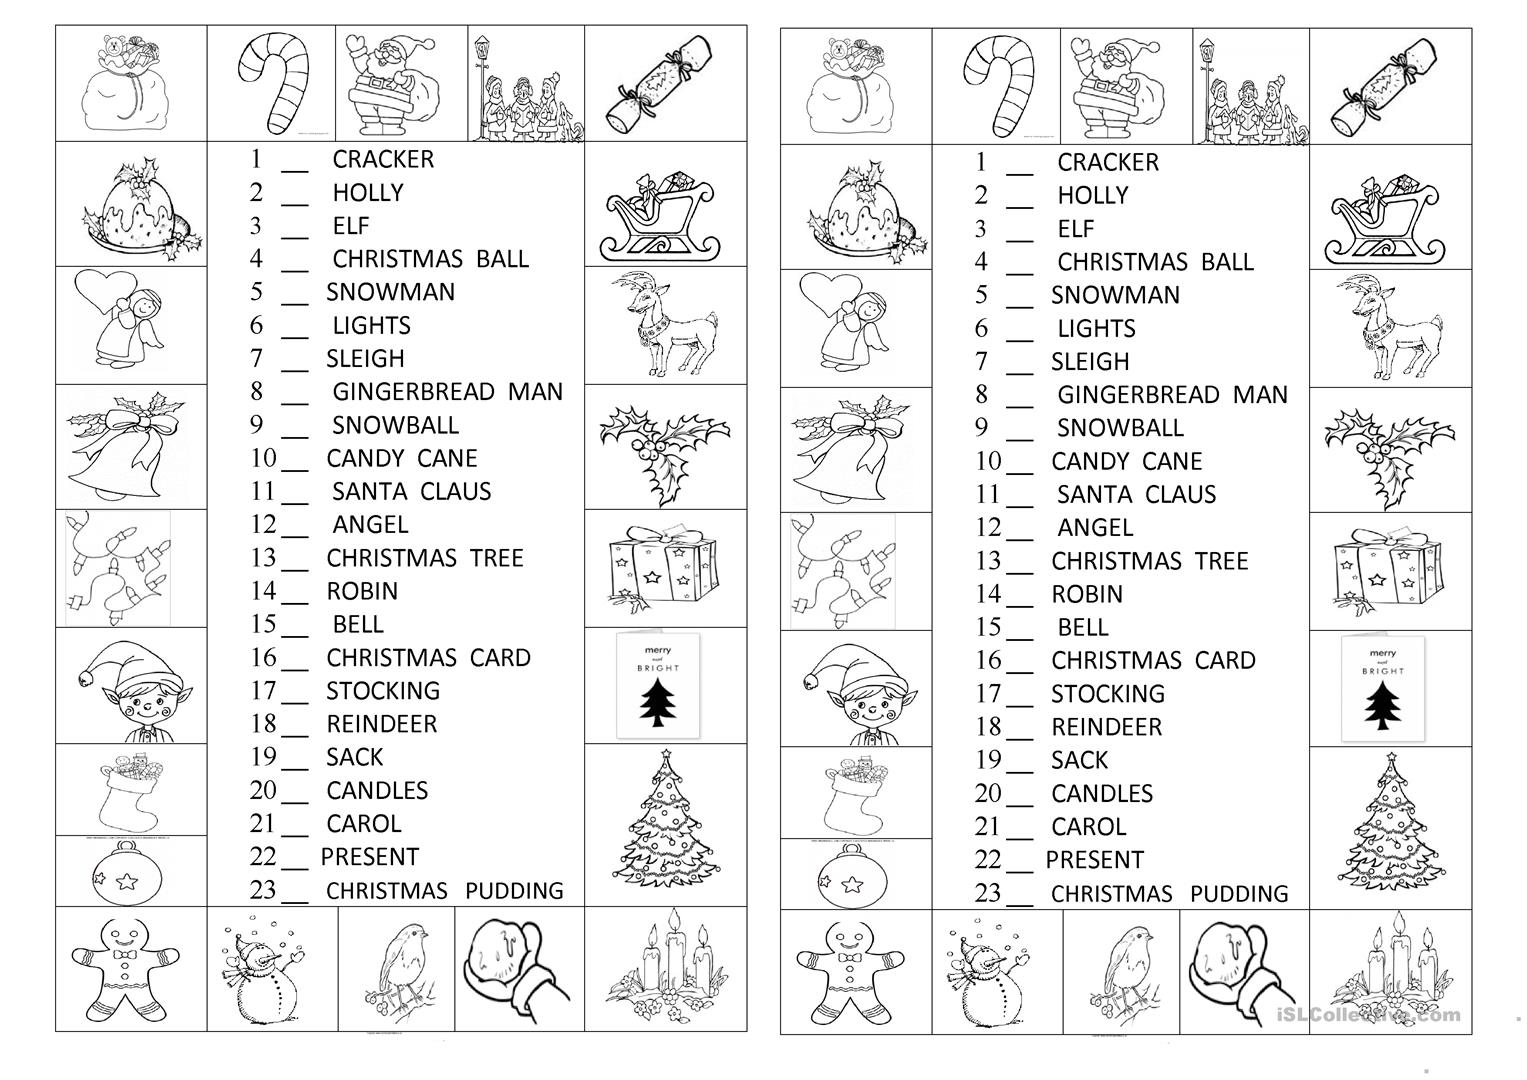 Look And Number The Christmas Symbols - English Esl